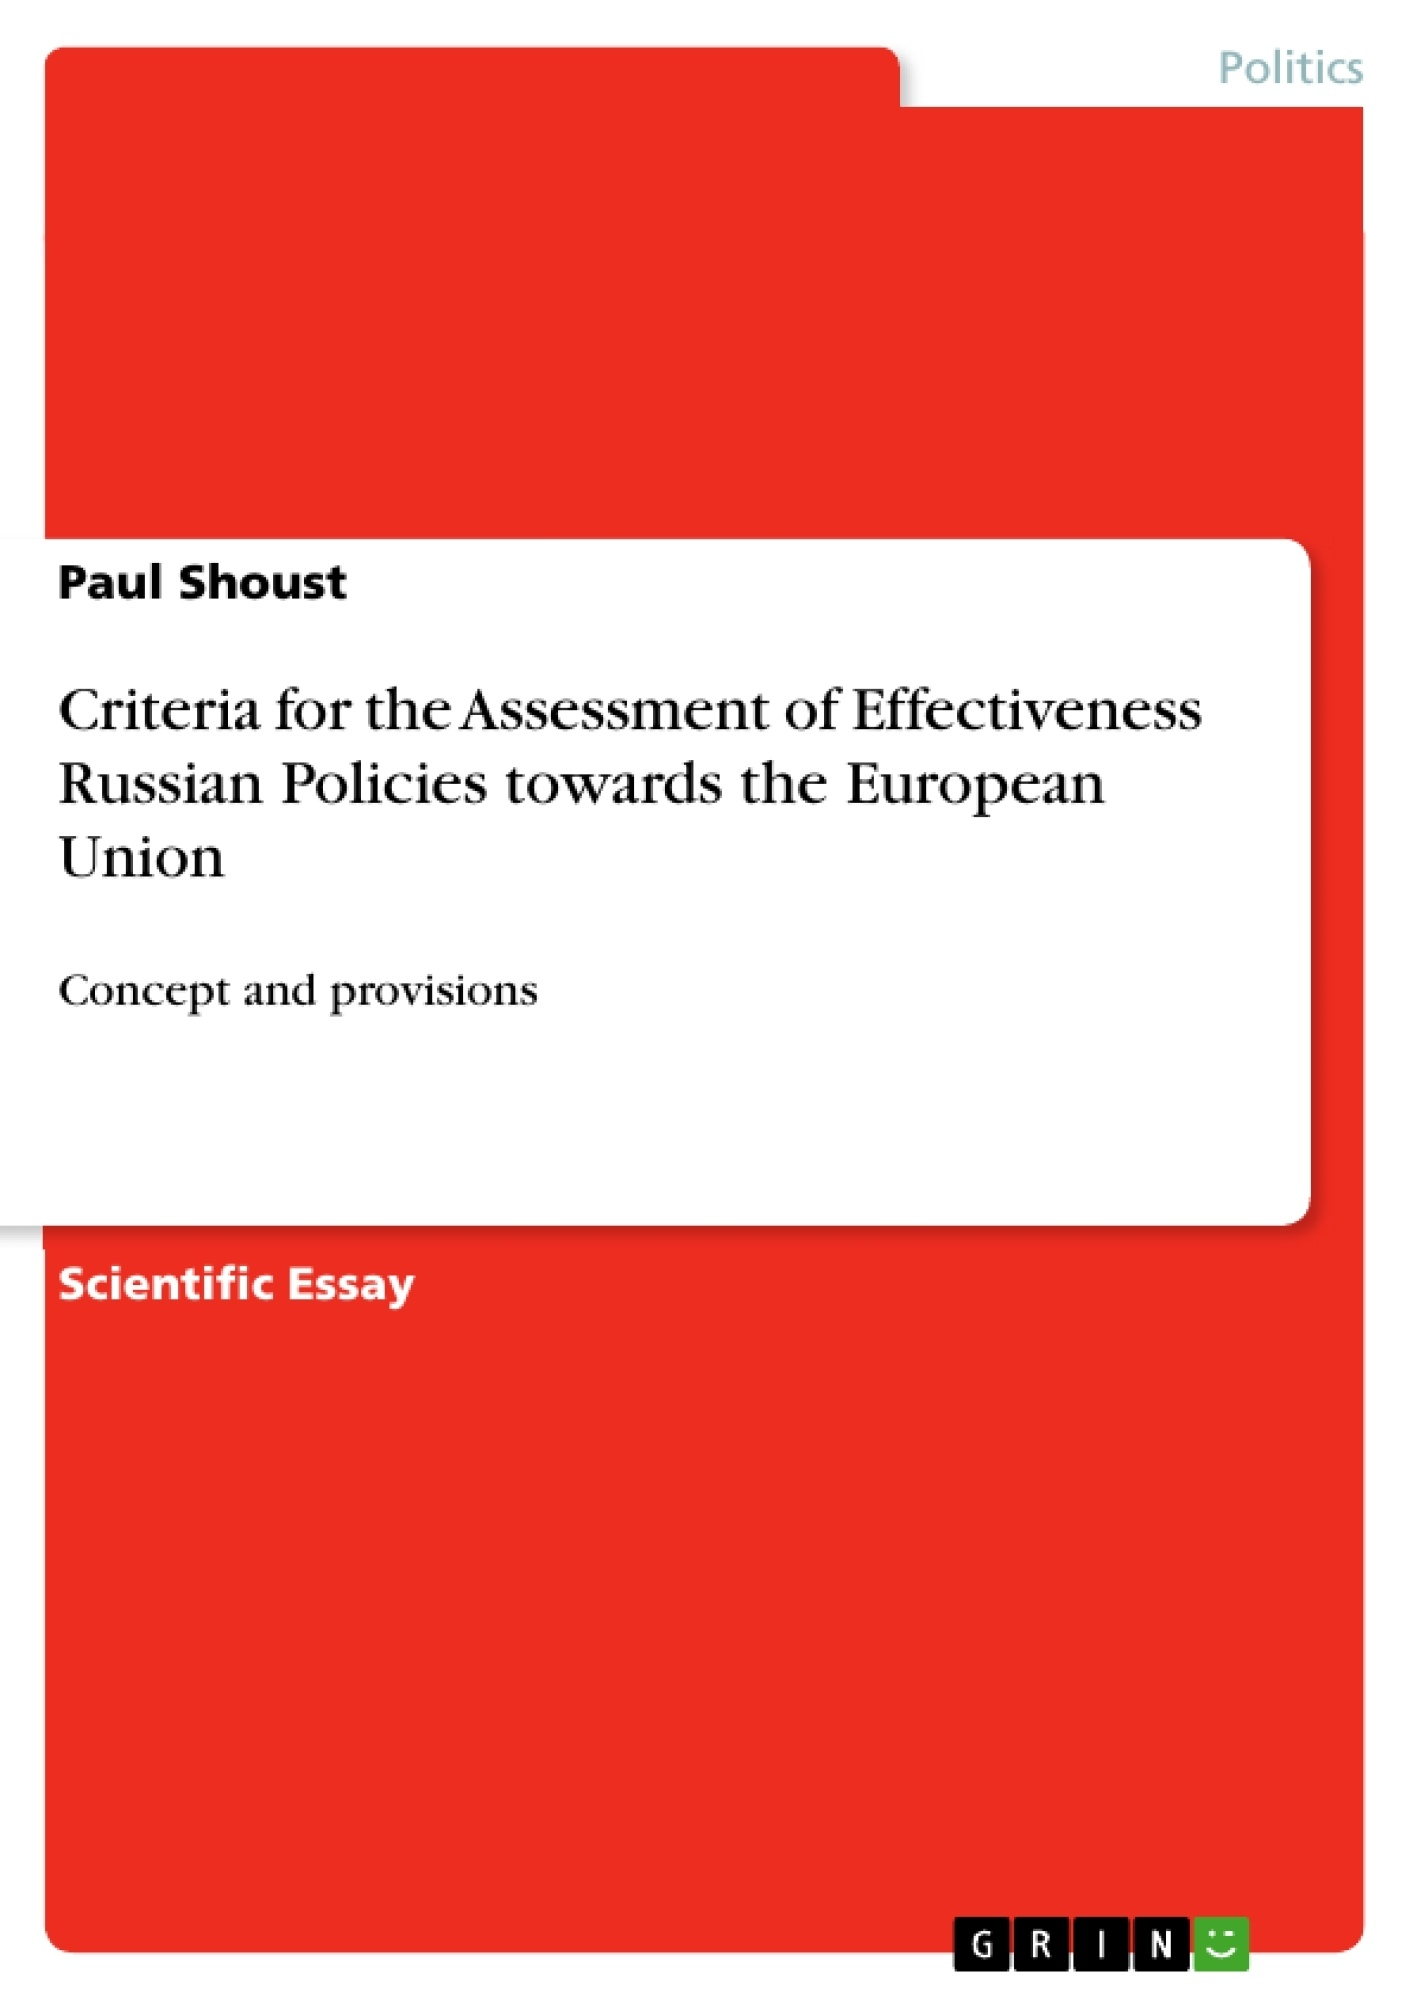 Title: Criteria for the Assessment of Effectiveness Russian Policies towards the European Union